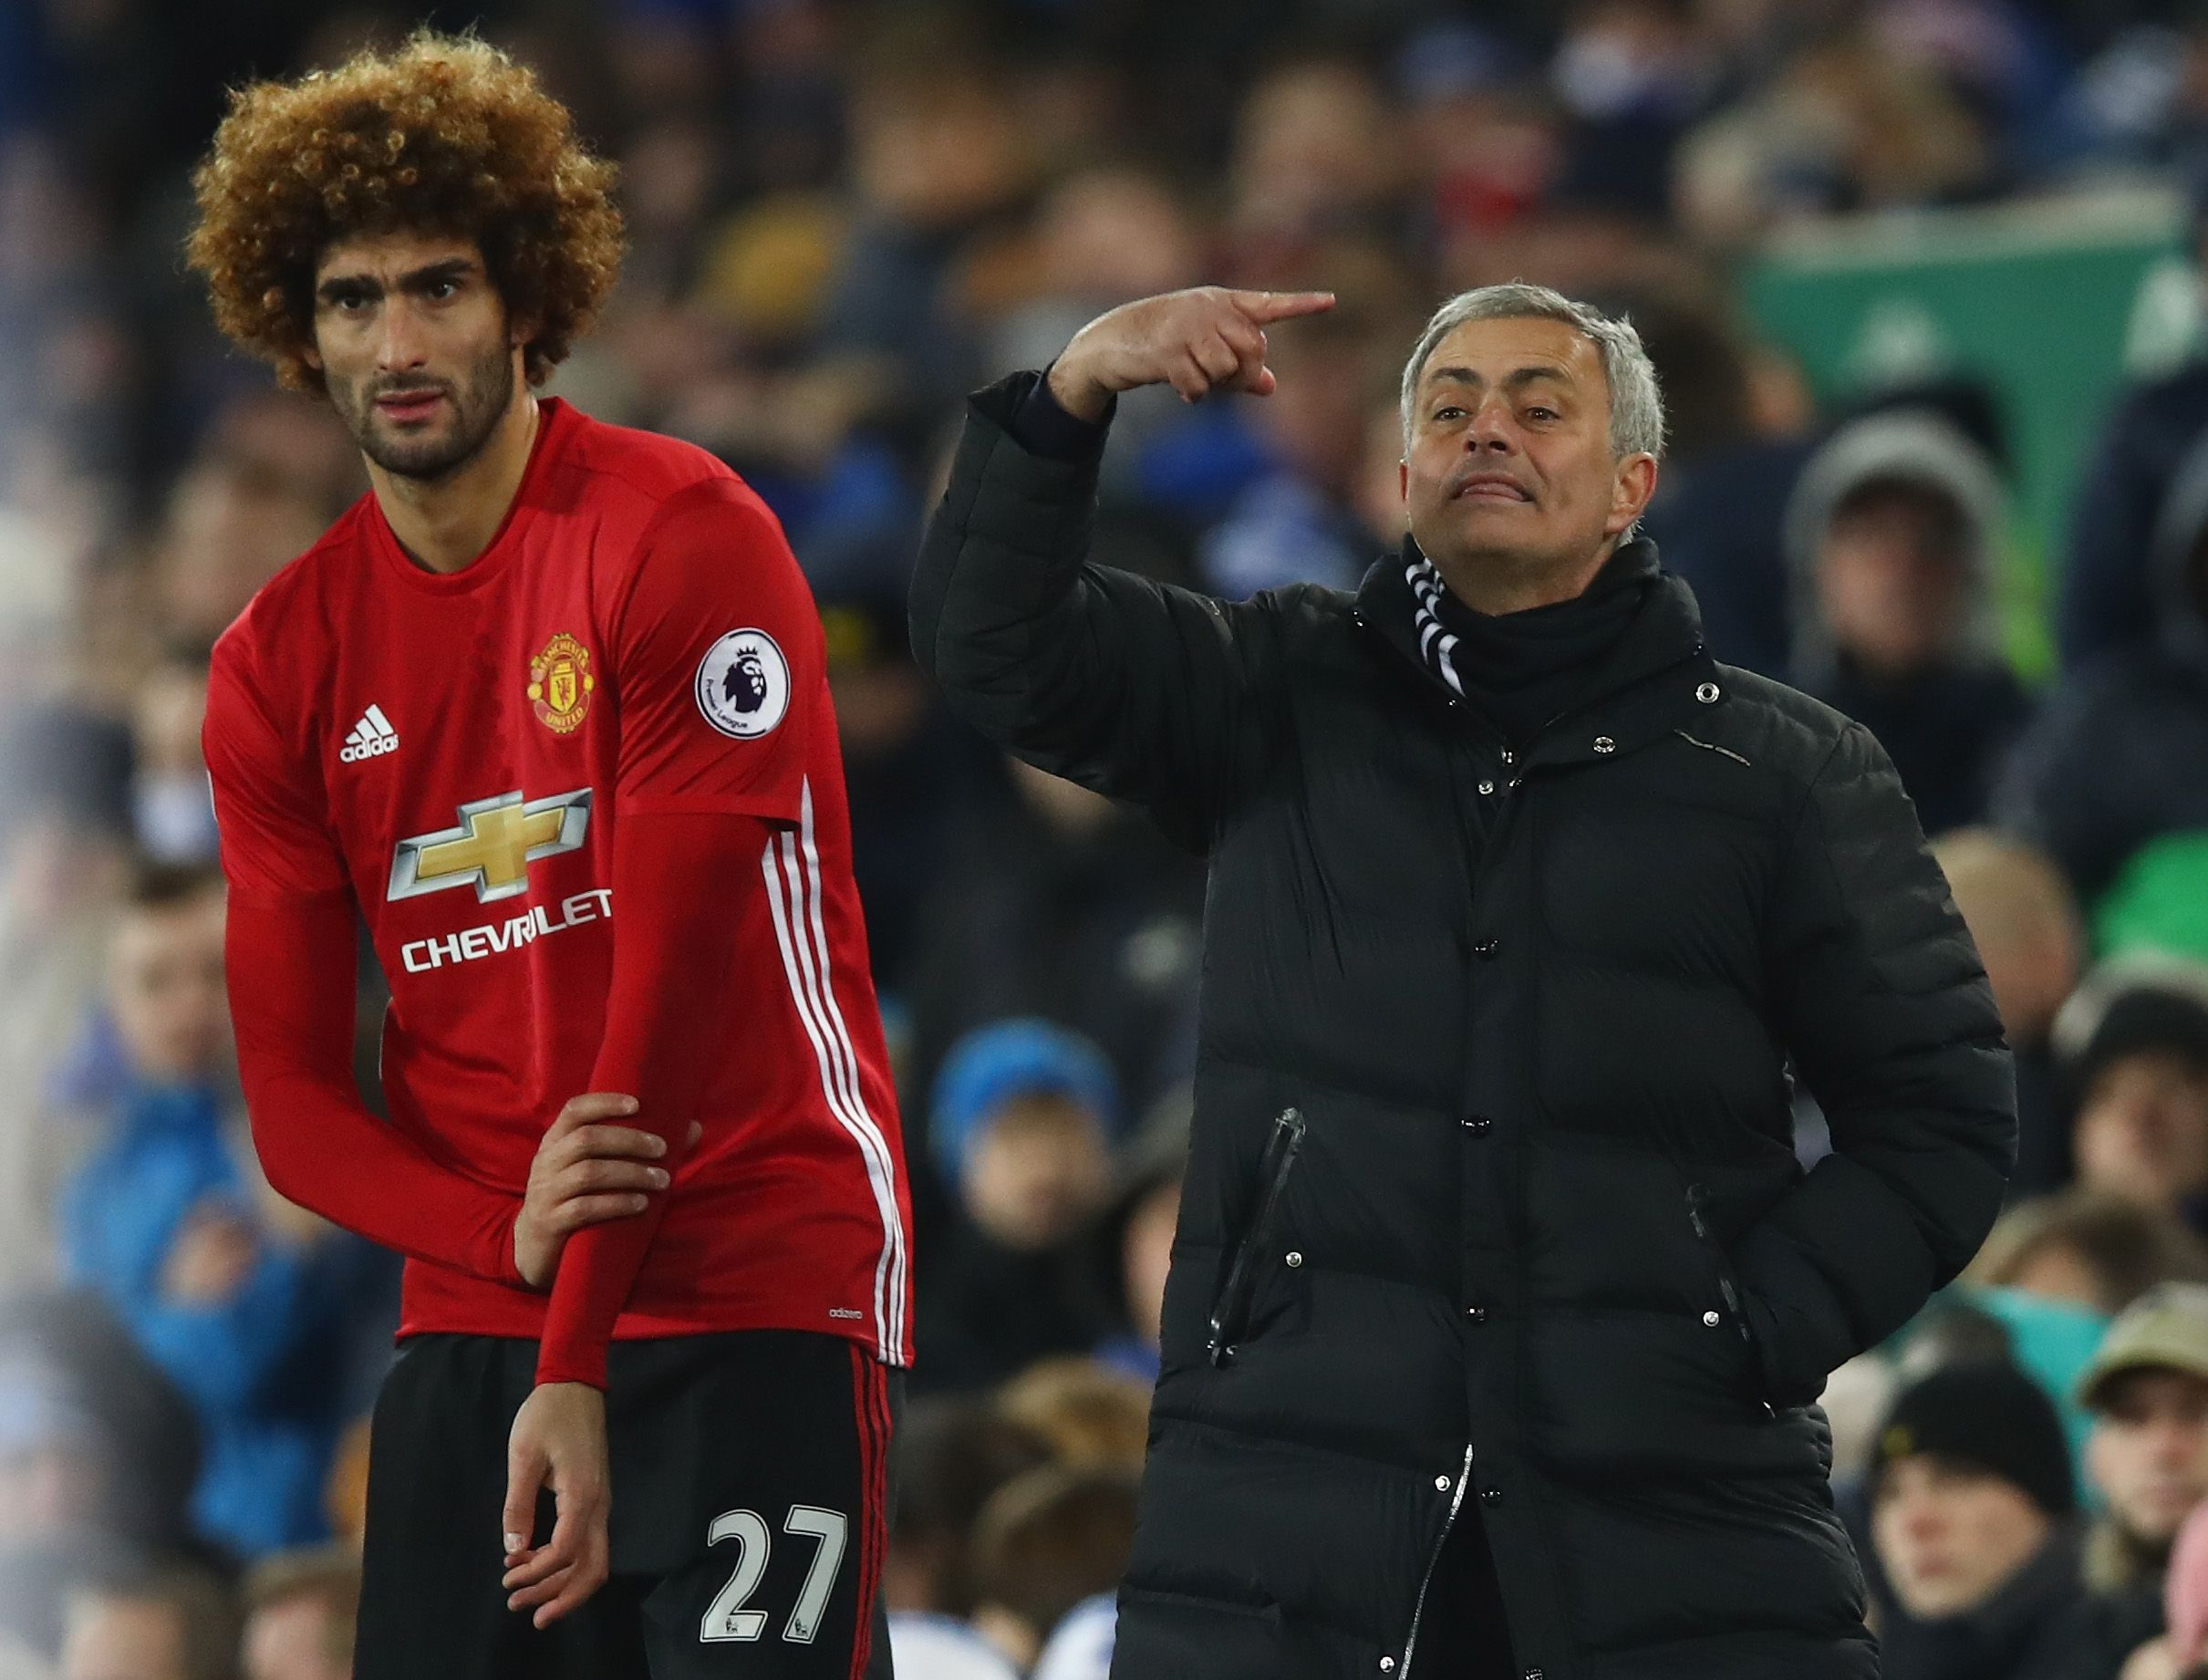 Manchester United's Marouane Fellaini, left, with Jose Mourinho.